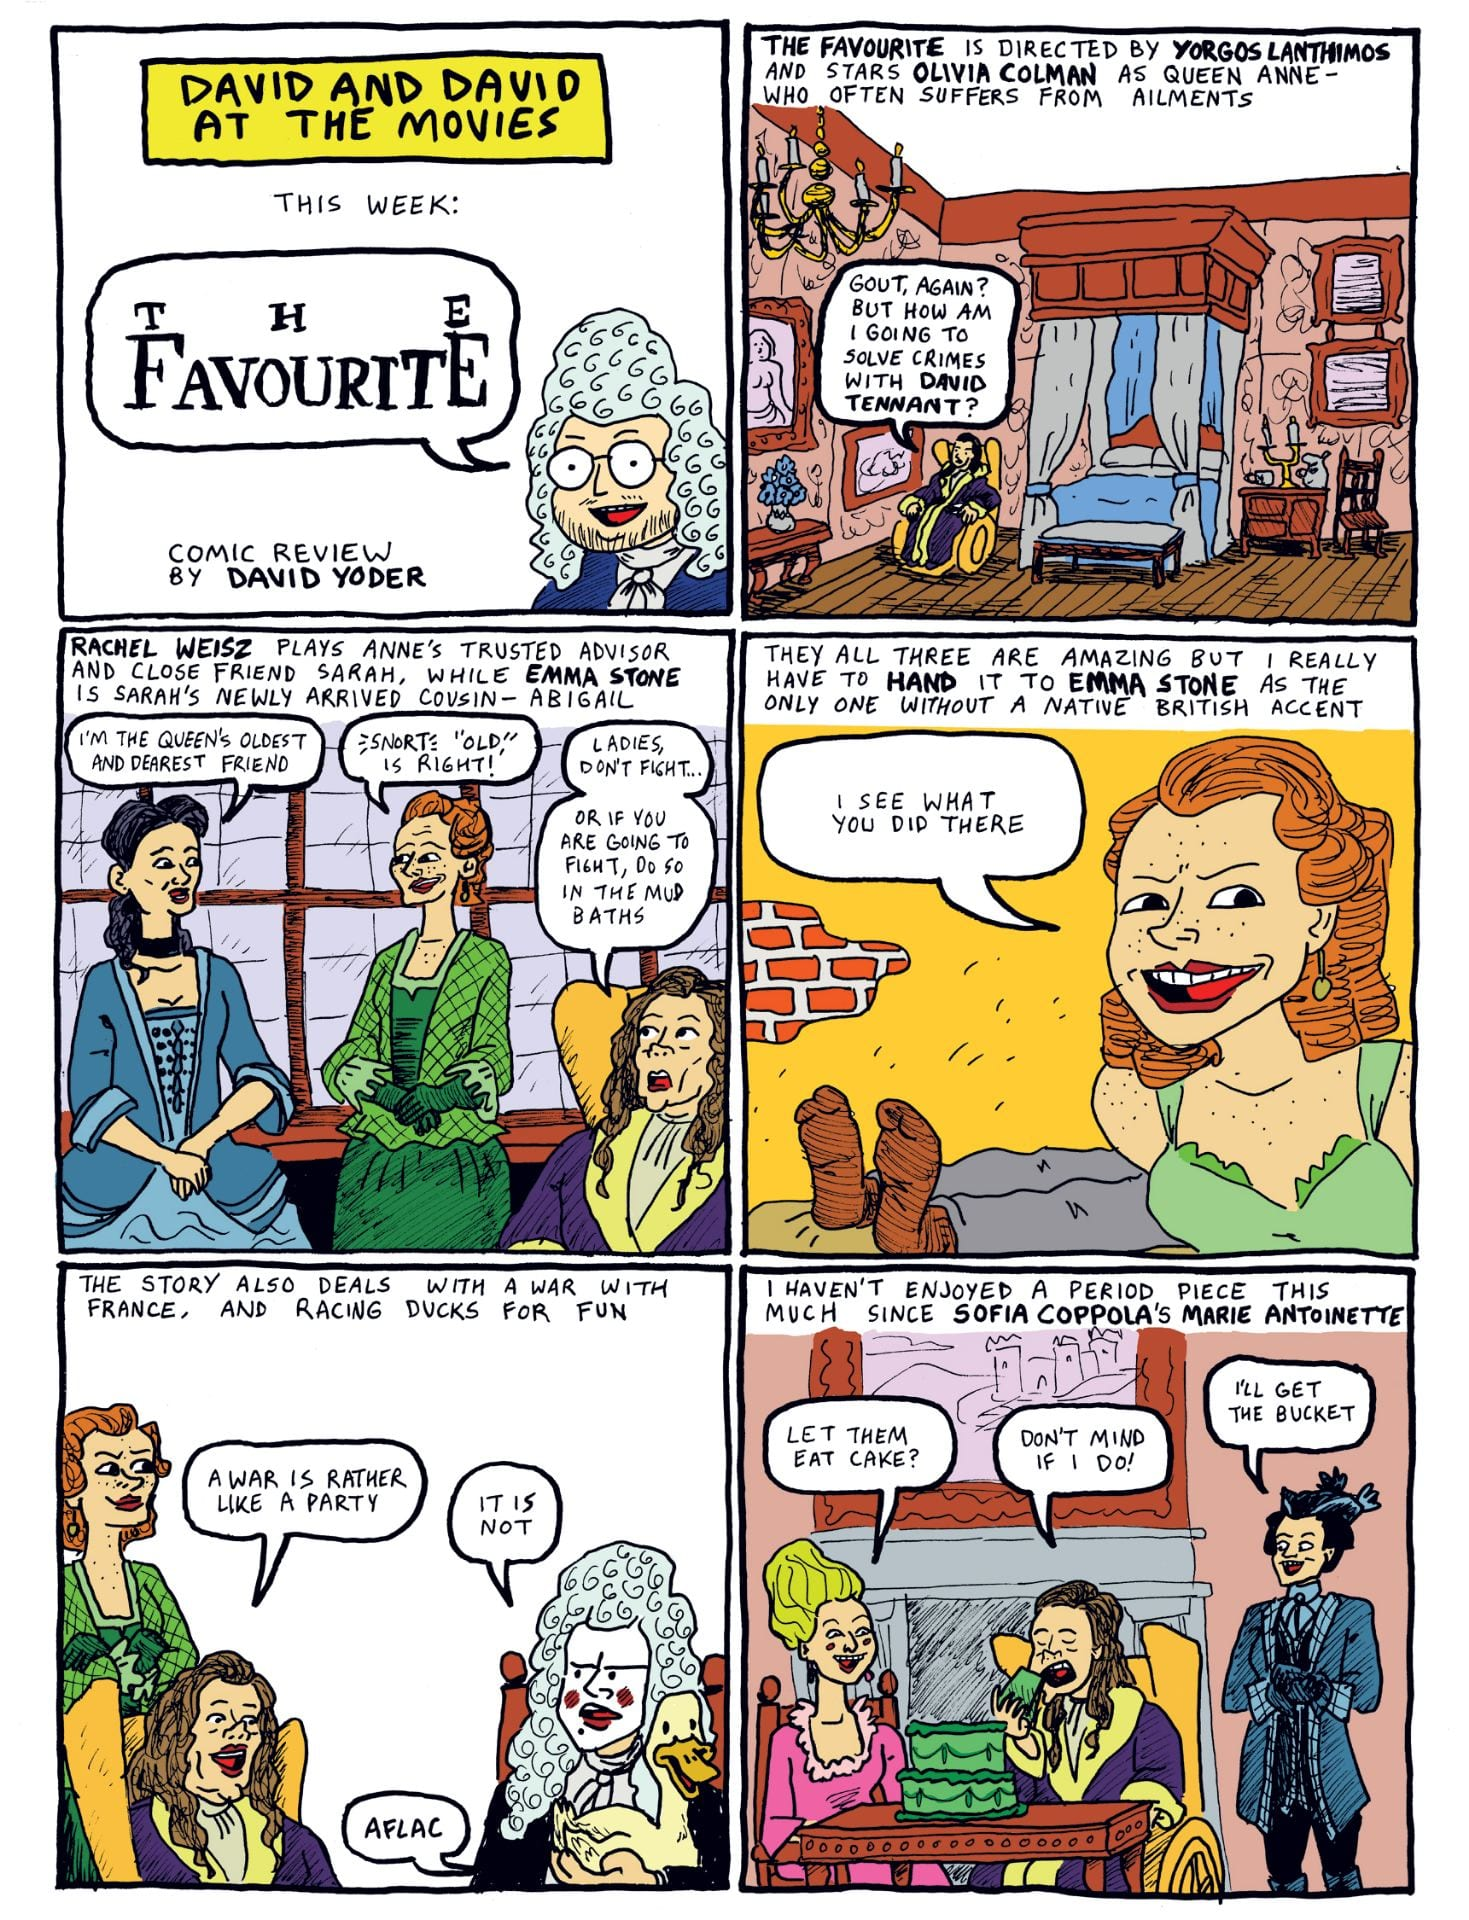 The Favourite comic by David Yoder